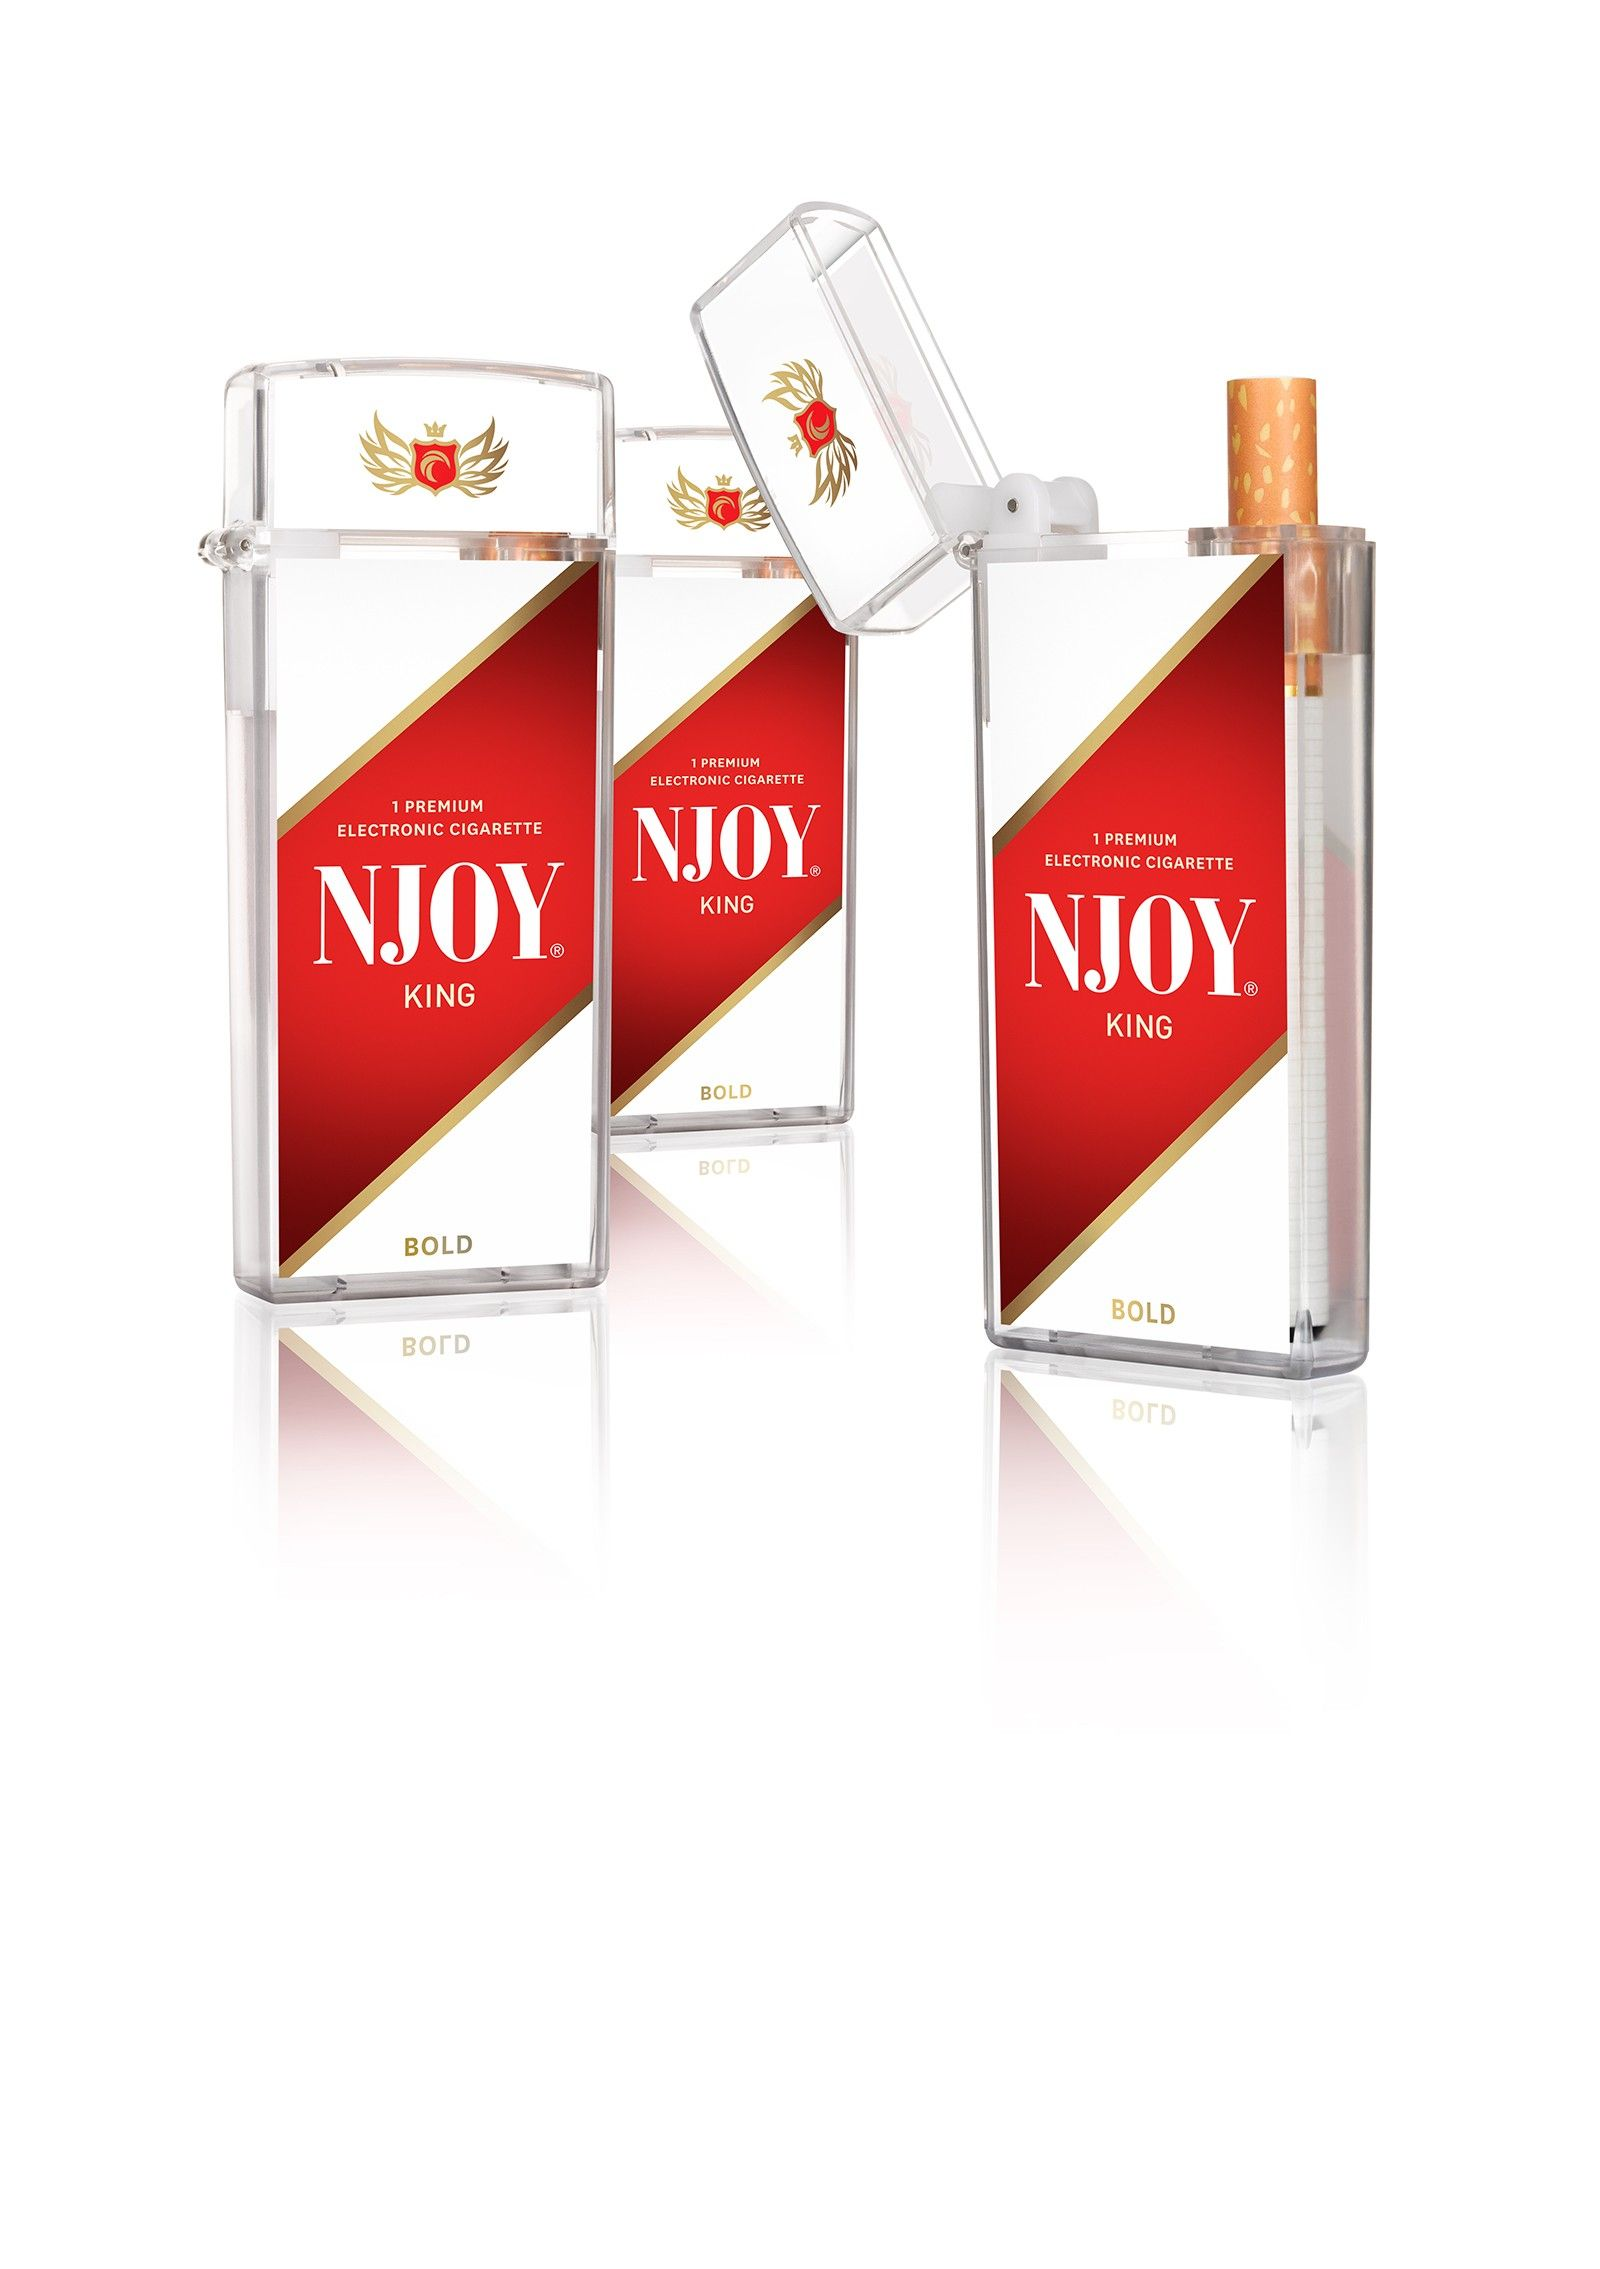 Top Five How To Refill Njoy Electronic Cigarette - Circus